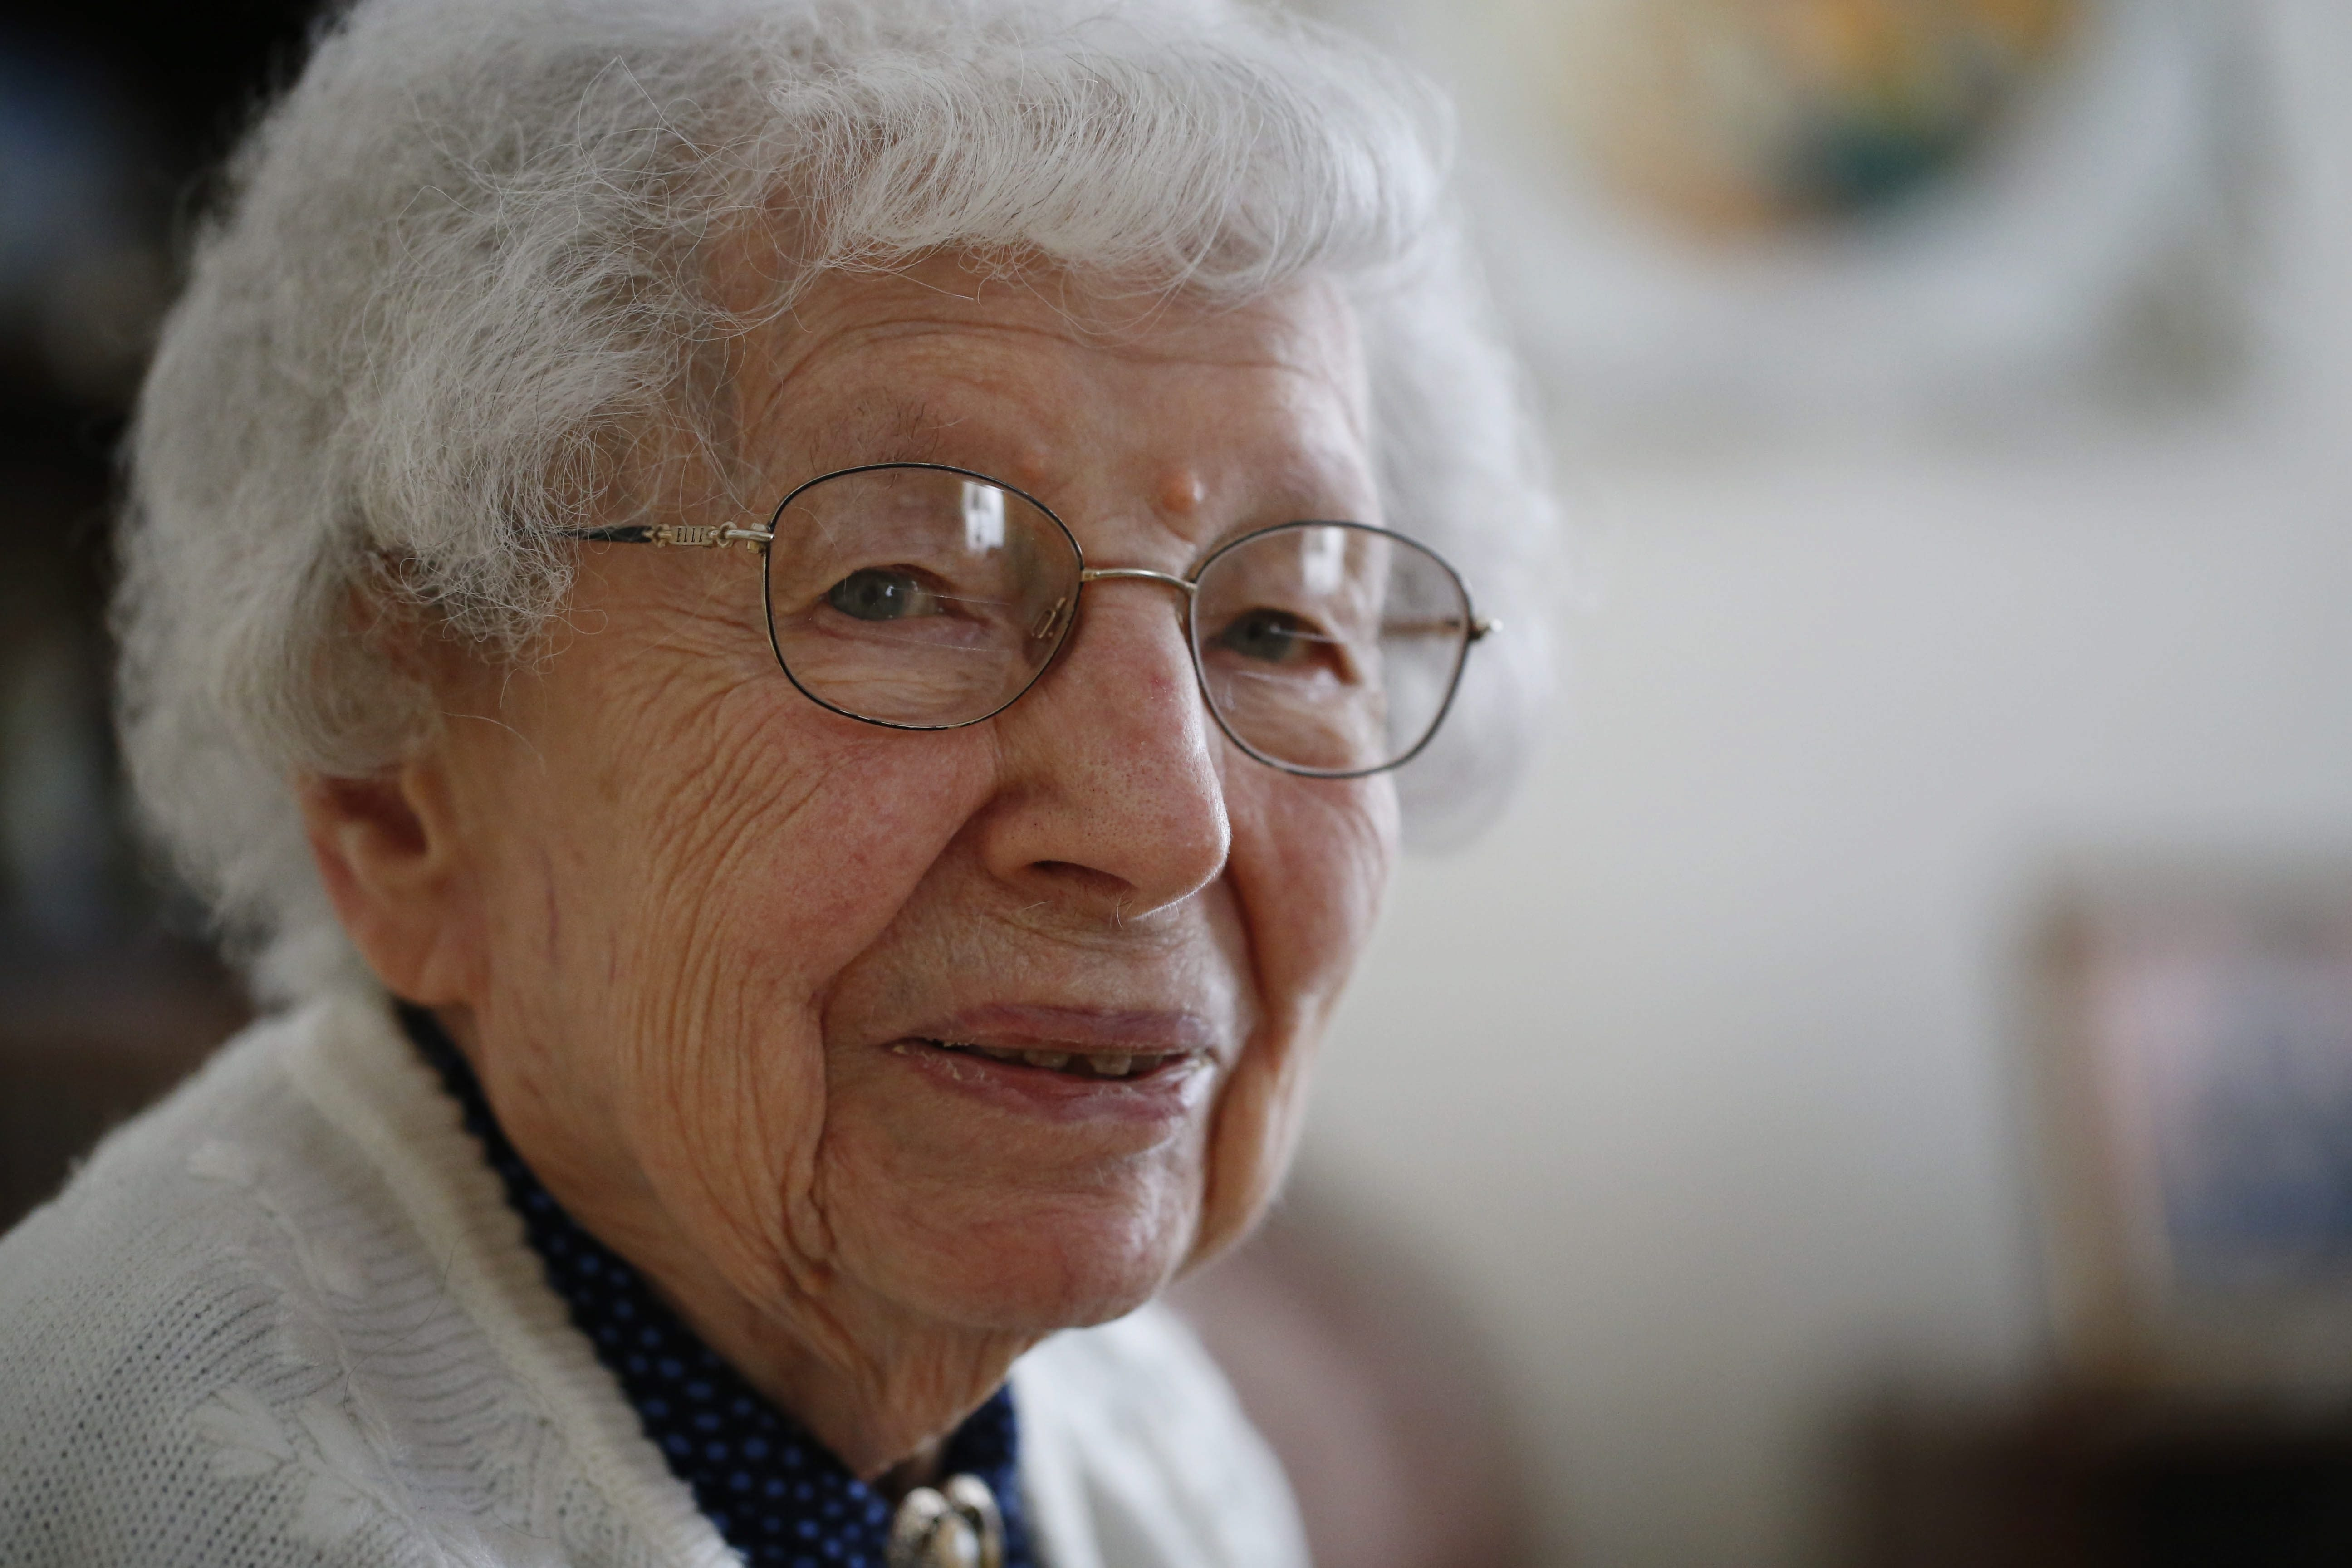 Helen Allen, who turns 107 this month, talks about her life at her North Tonawanda home.